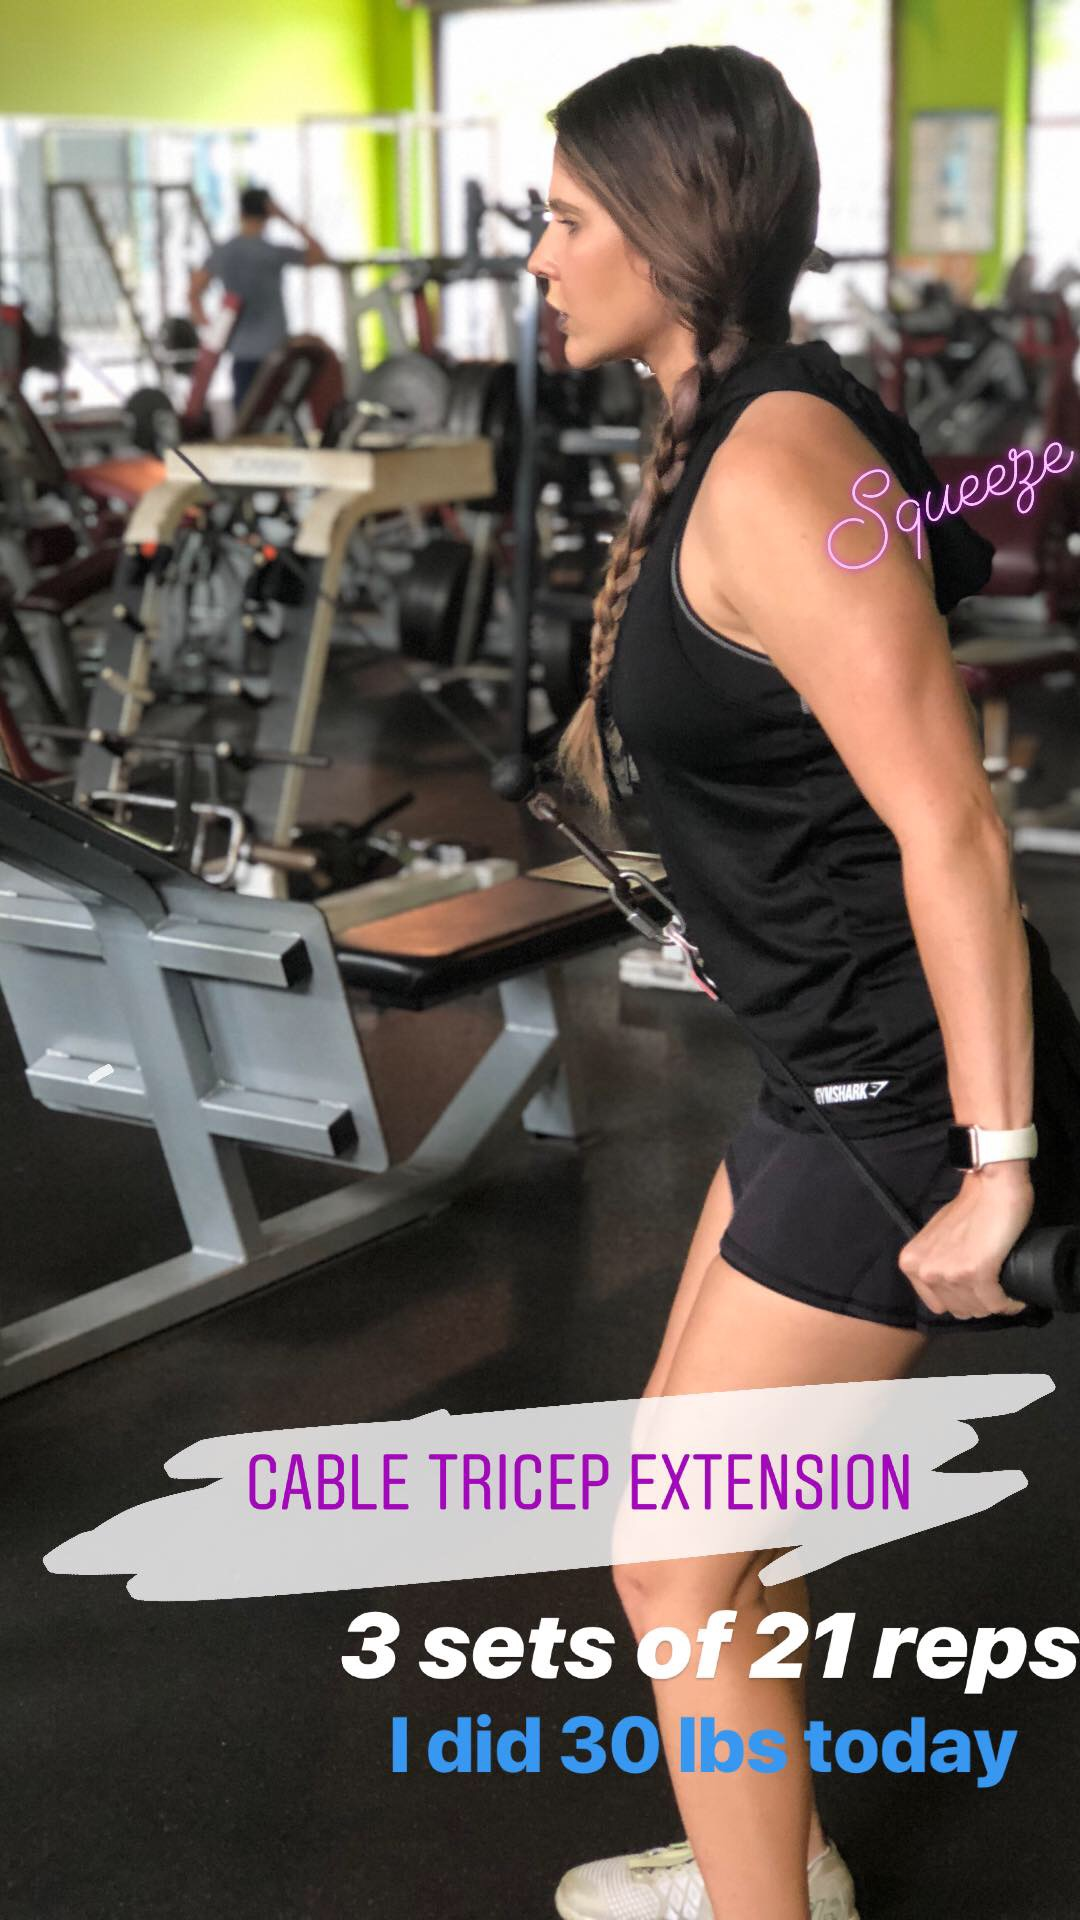 cable tricep extension angela fletcher